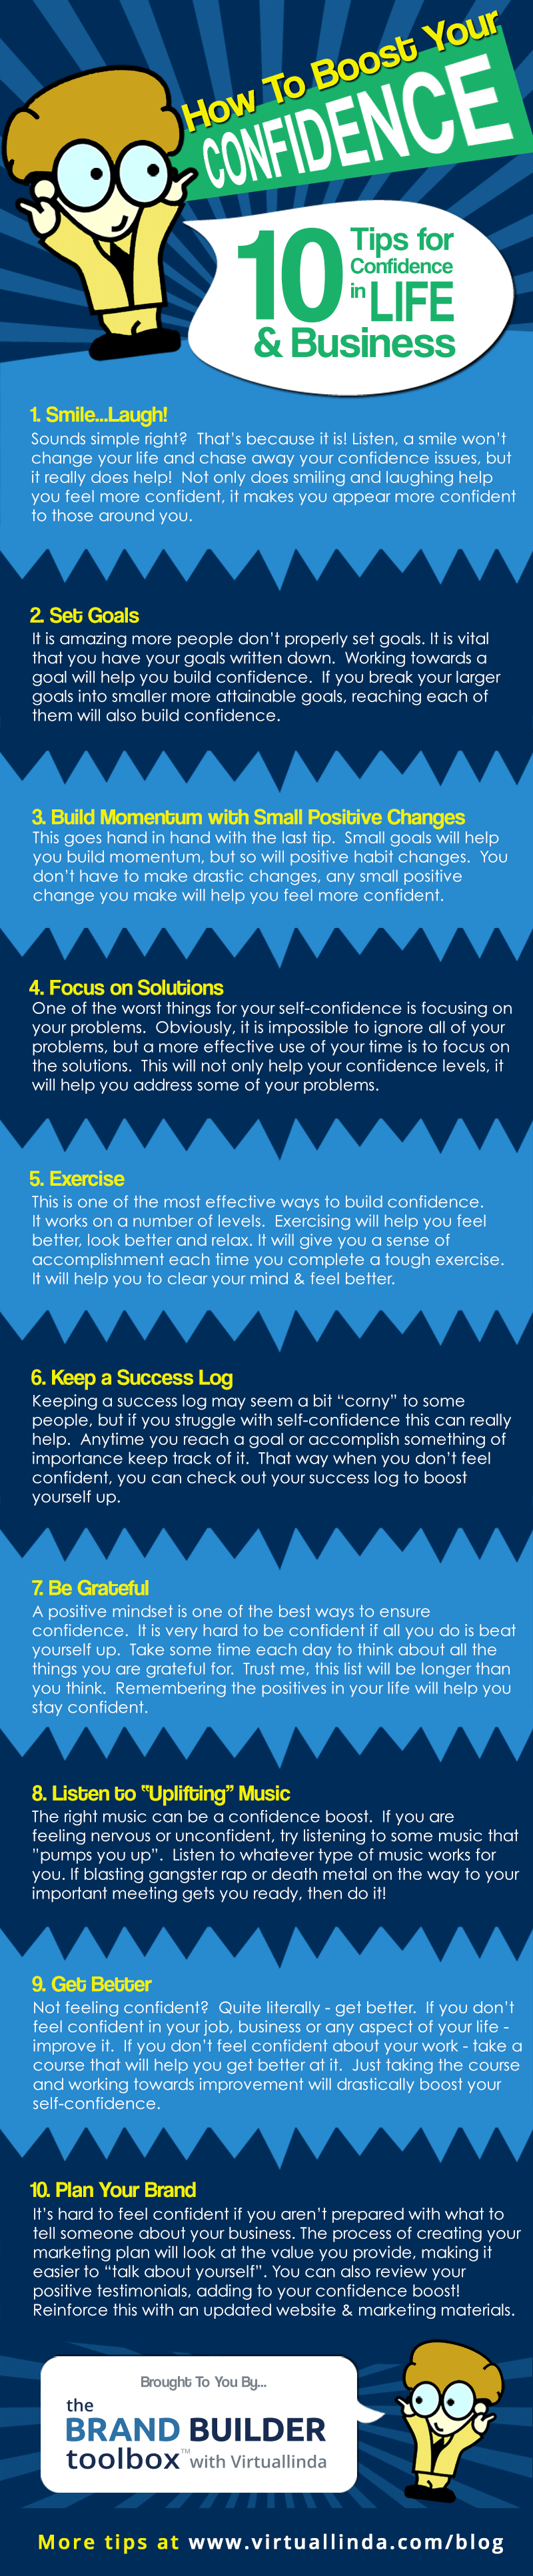 10 Tips for Confidence in Life & Business